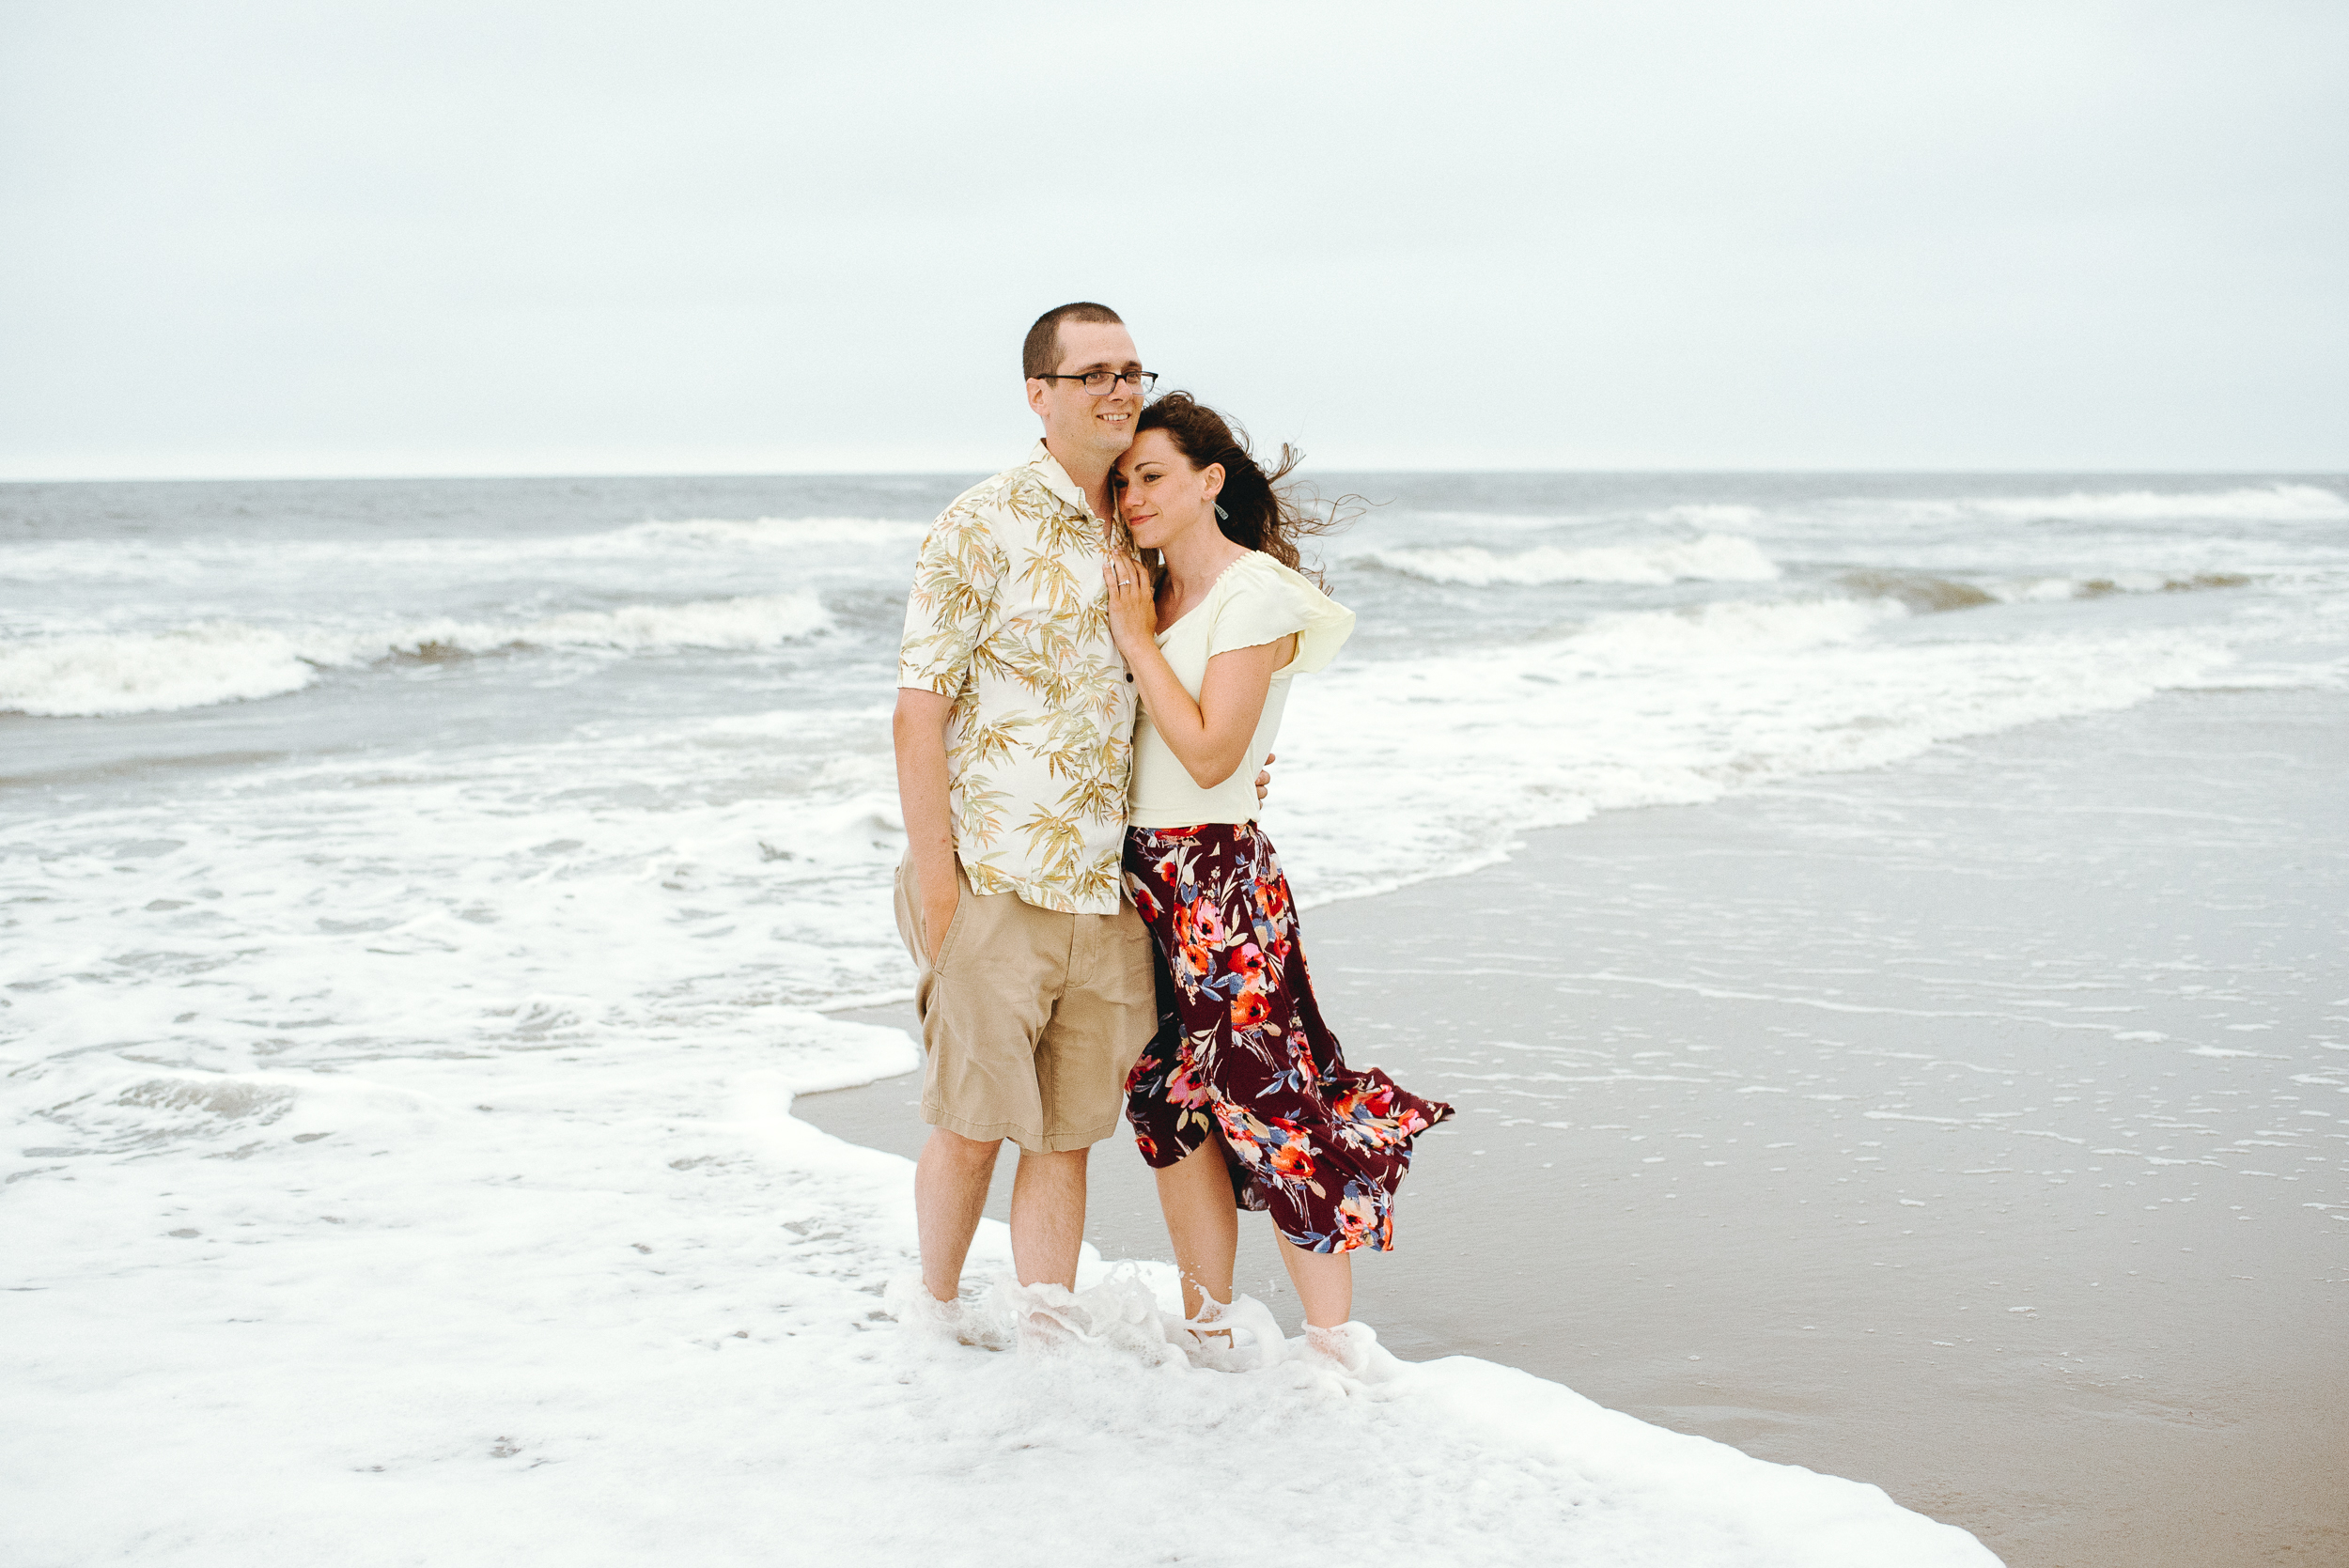 Ocean-City-New-Jersey- Beach-Engagemnt-Peaberry-Photography-Philadelphia-Wedding-Photographer-016.jpg